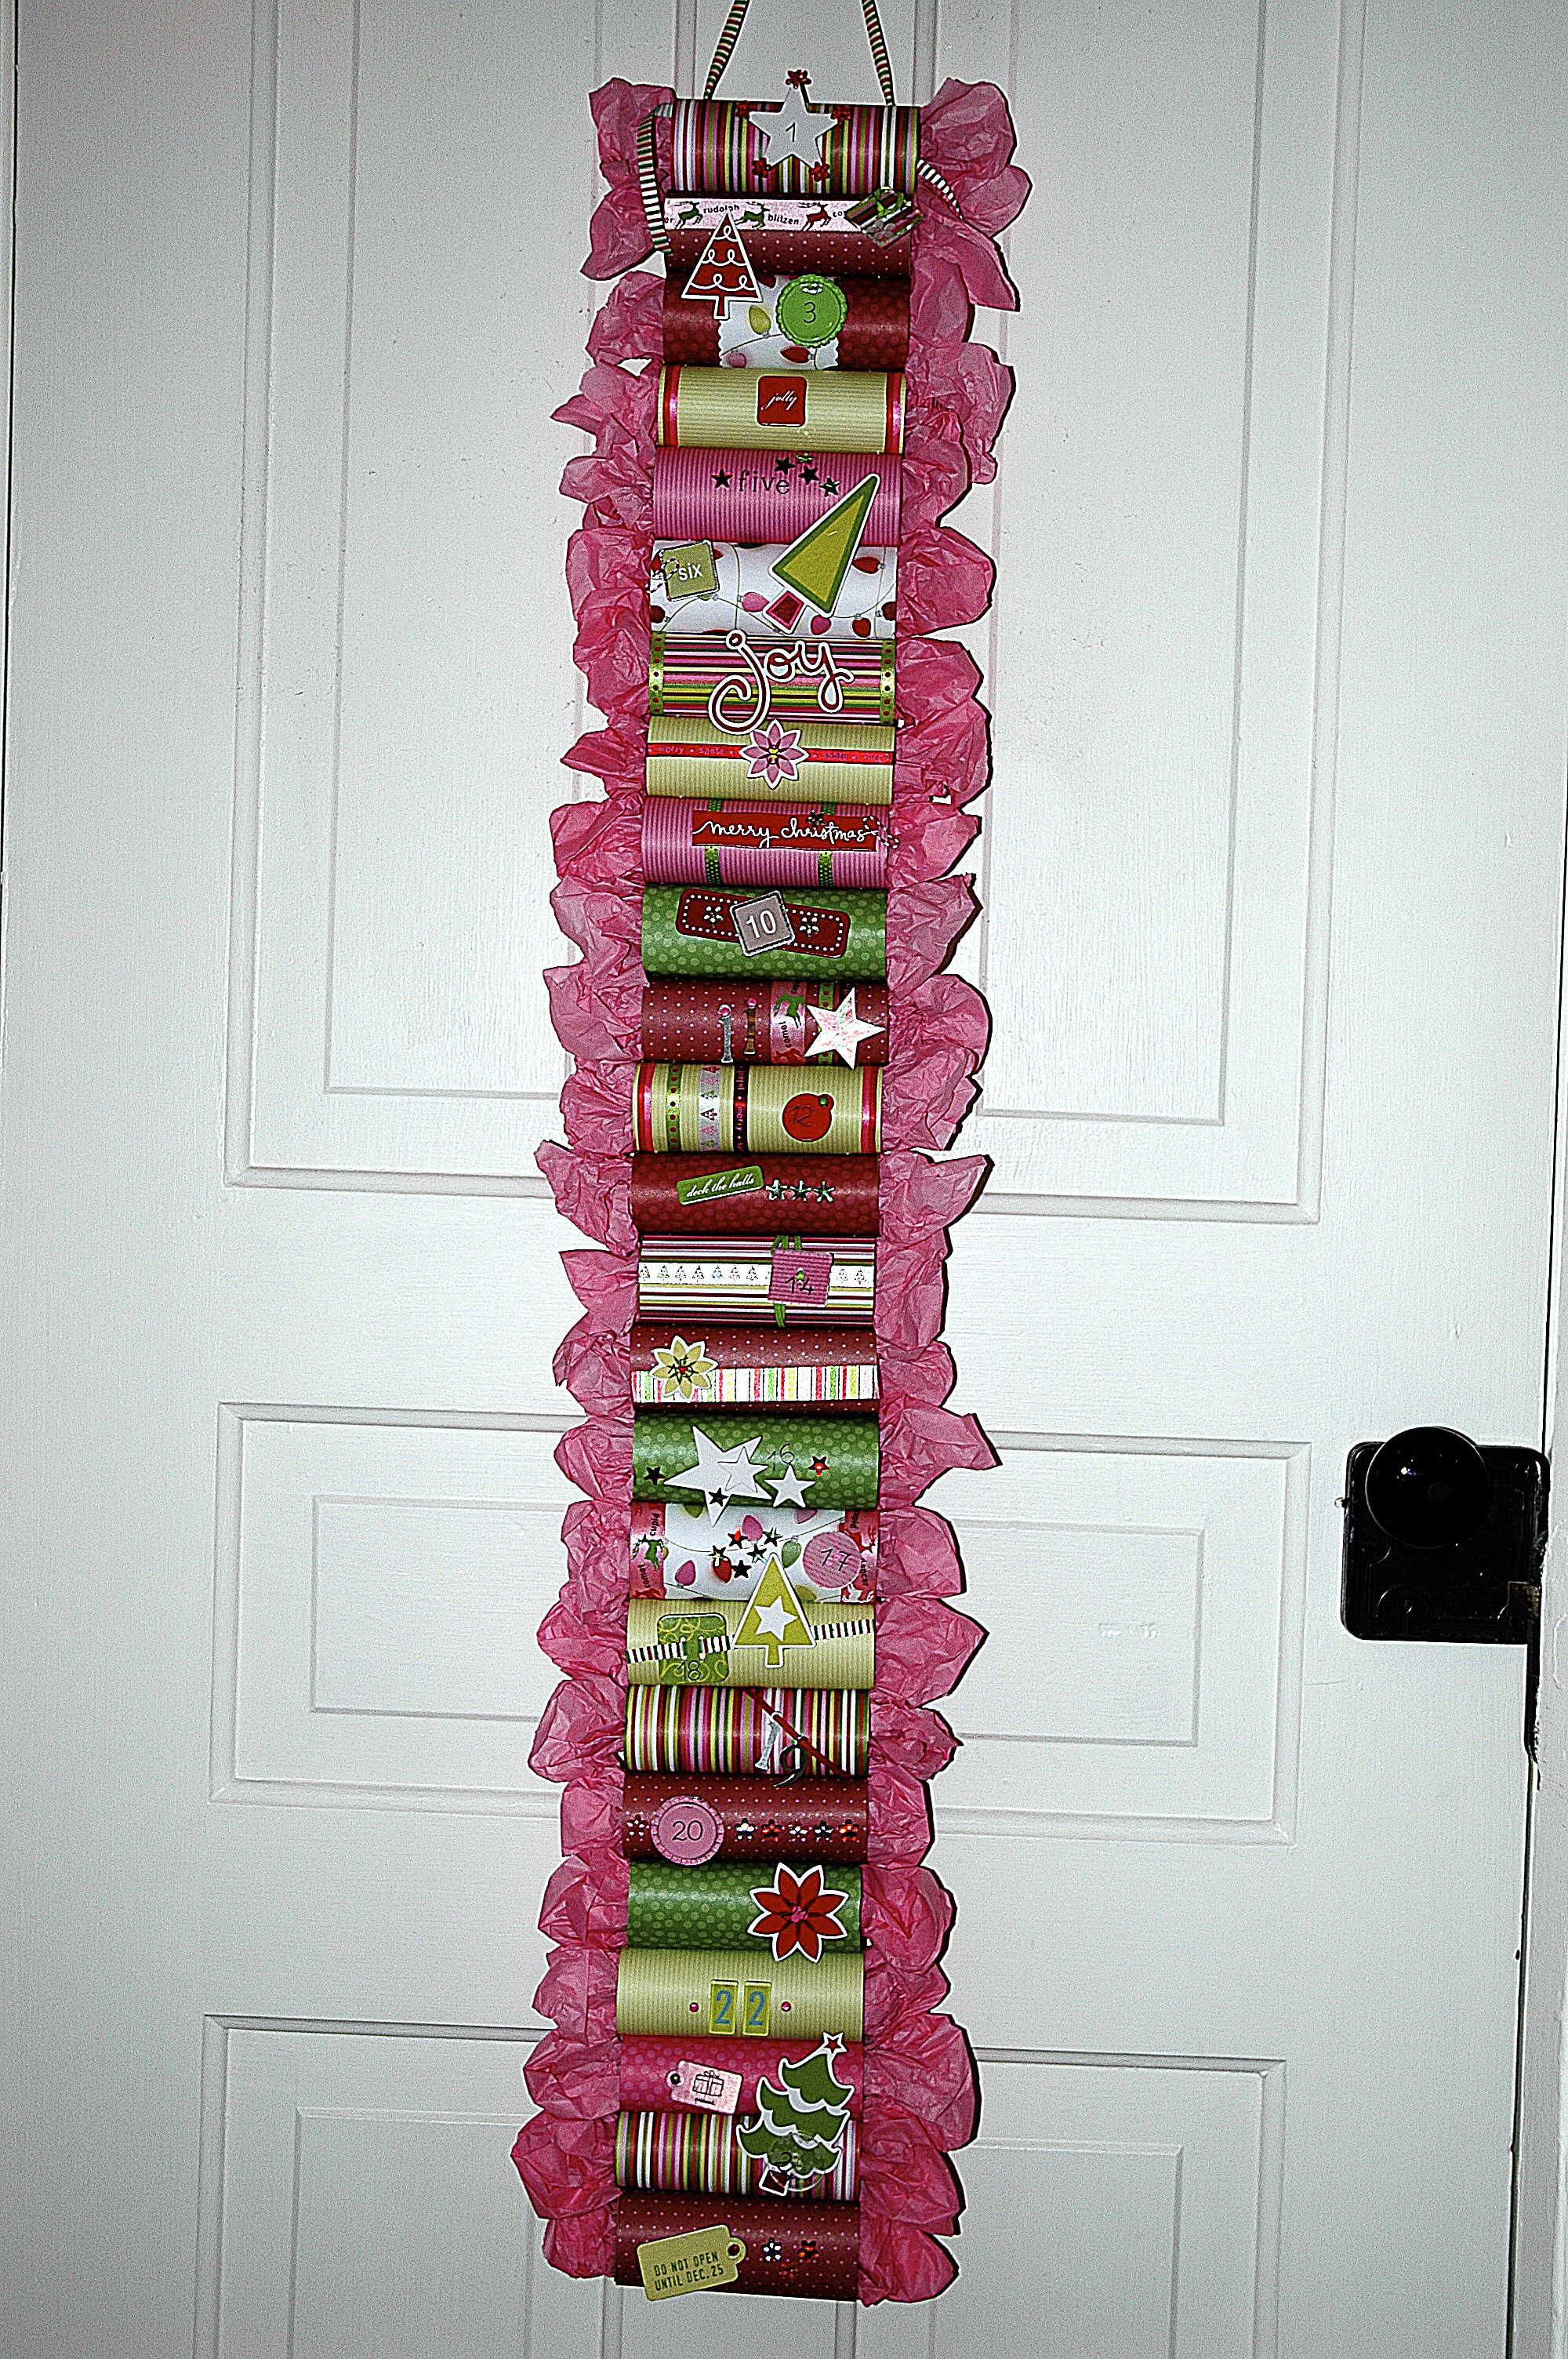 Adventskalender Aus Toilettenrollen Check Out This Advent Calendar Made From Empty Toilet